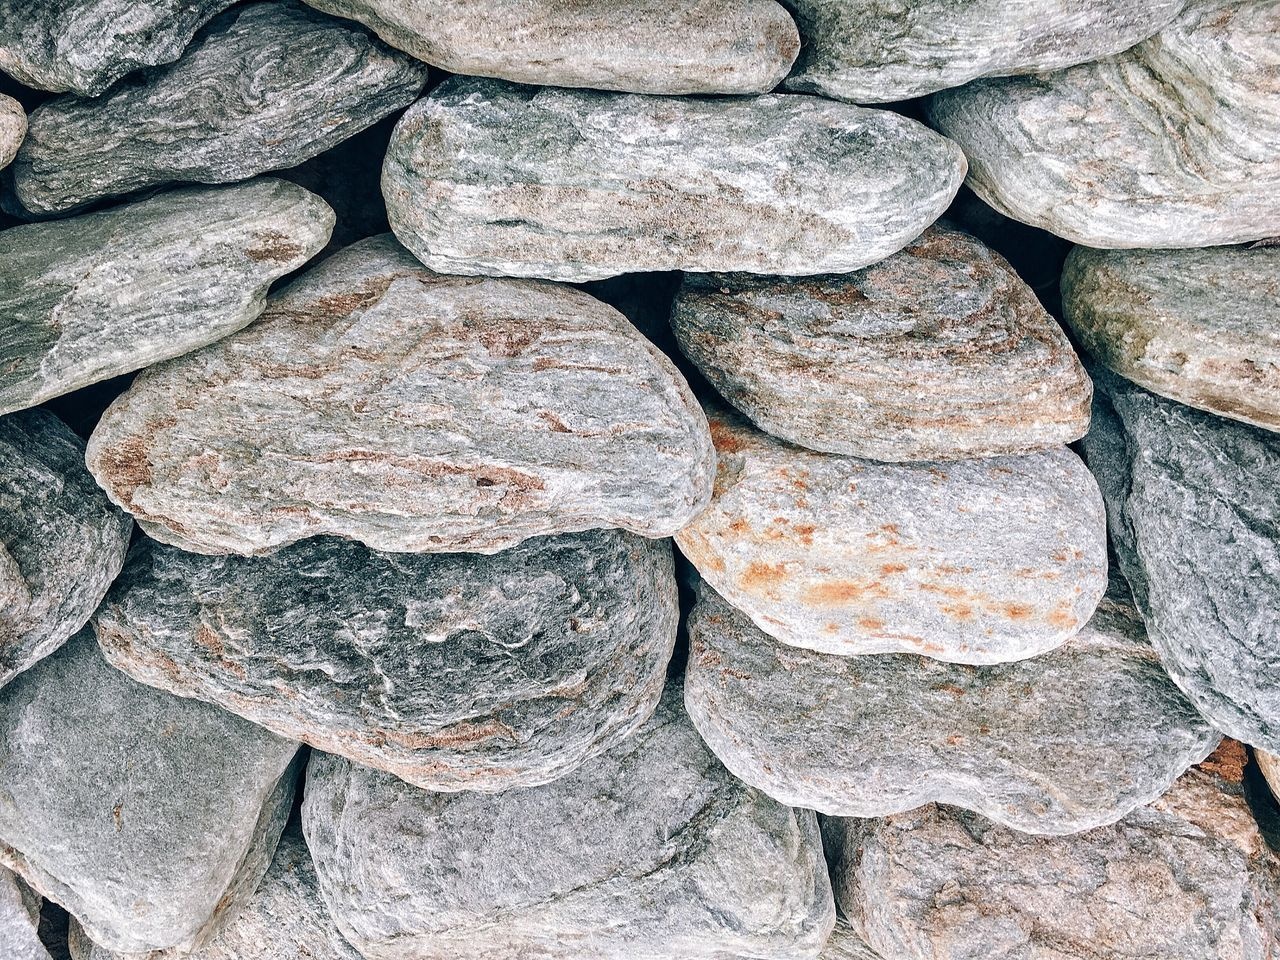 Eyeem Philippines Full Frame Backgrounds Rock - Object Large Group Of Objects No People Nature Bakery Loaf Of Bread Outdoors Close-up Day